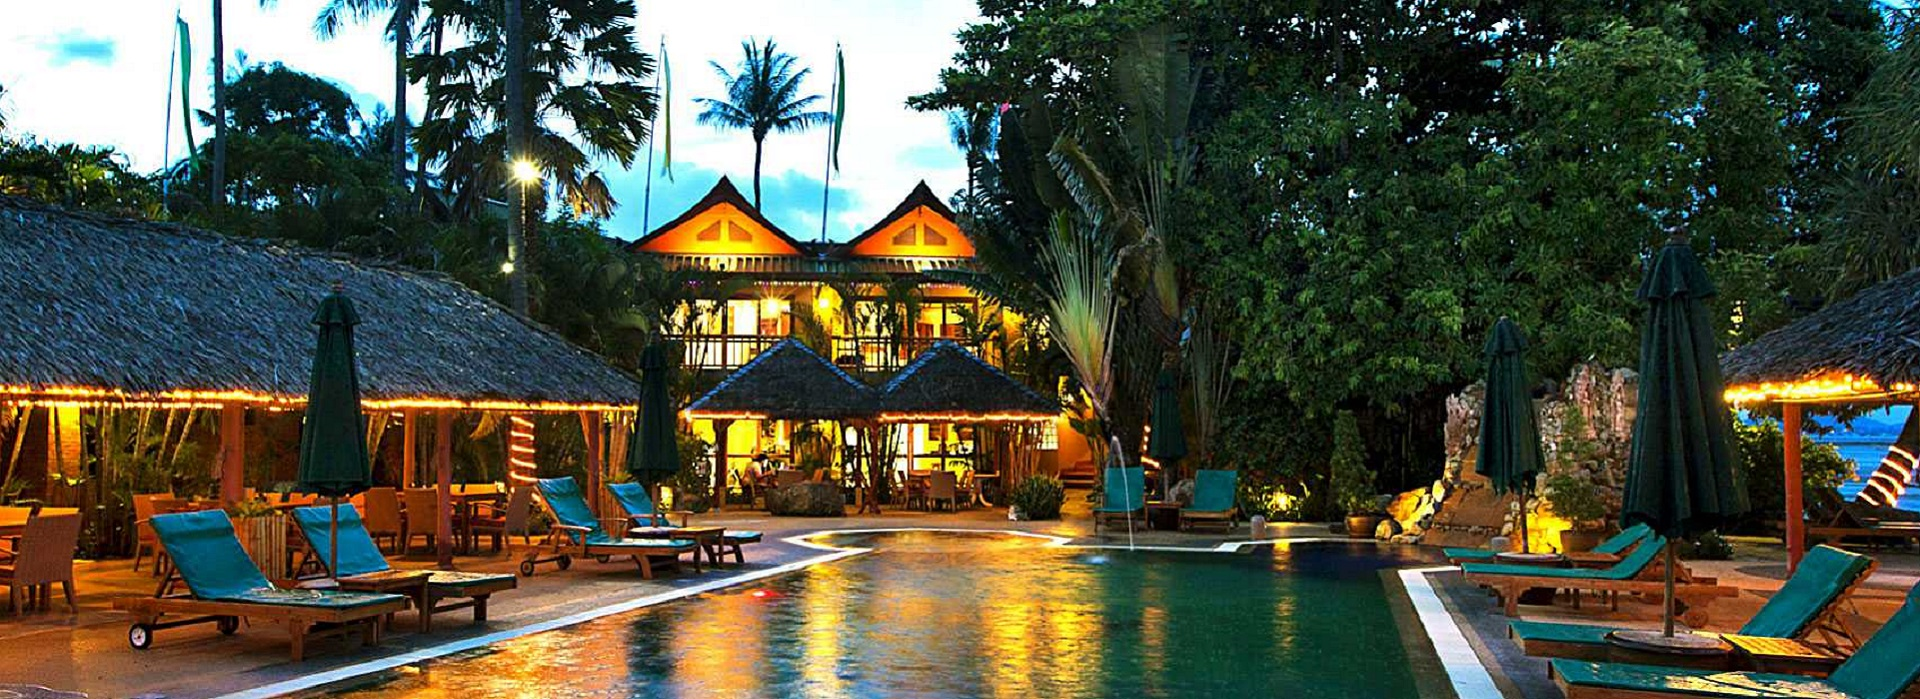 About Phuket and the Friendship Beach Resort